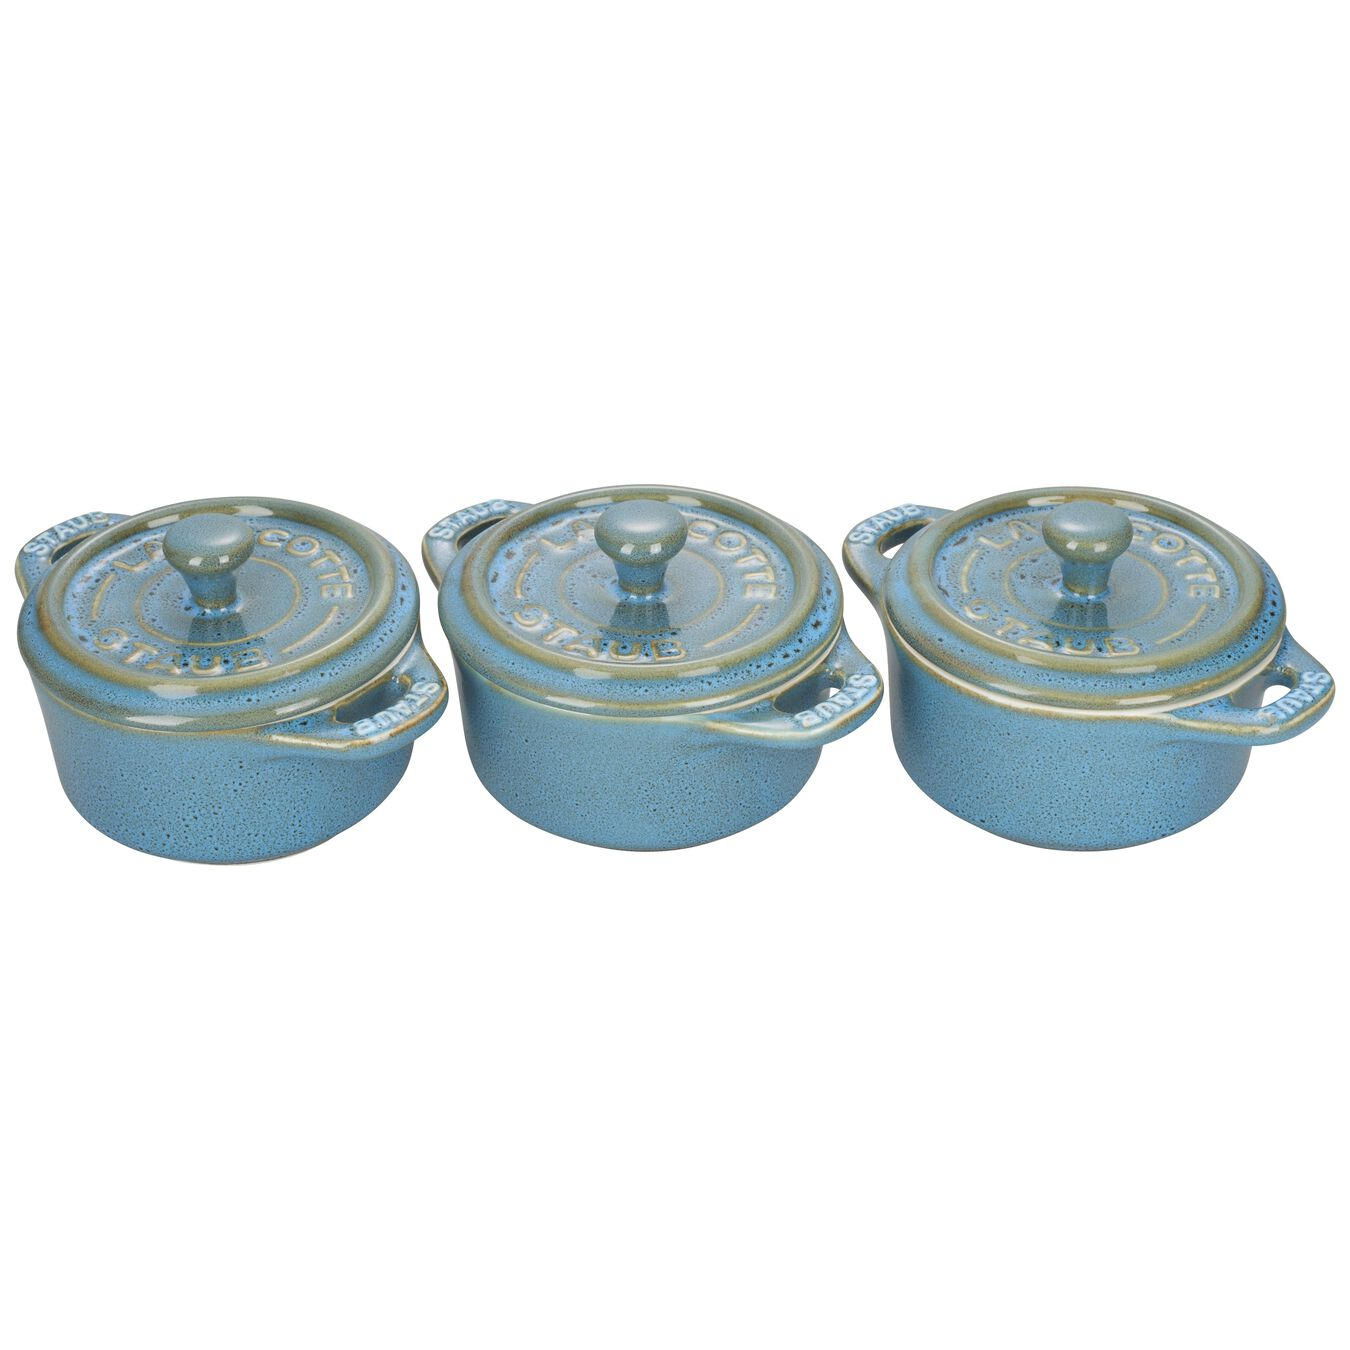 3-pc Mini Round Cocotte Set - Rustic Turquoise,,large 4